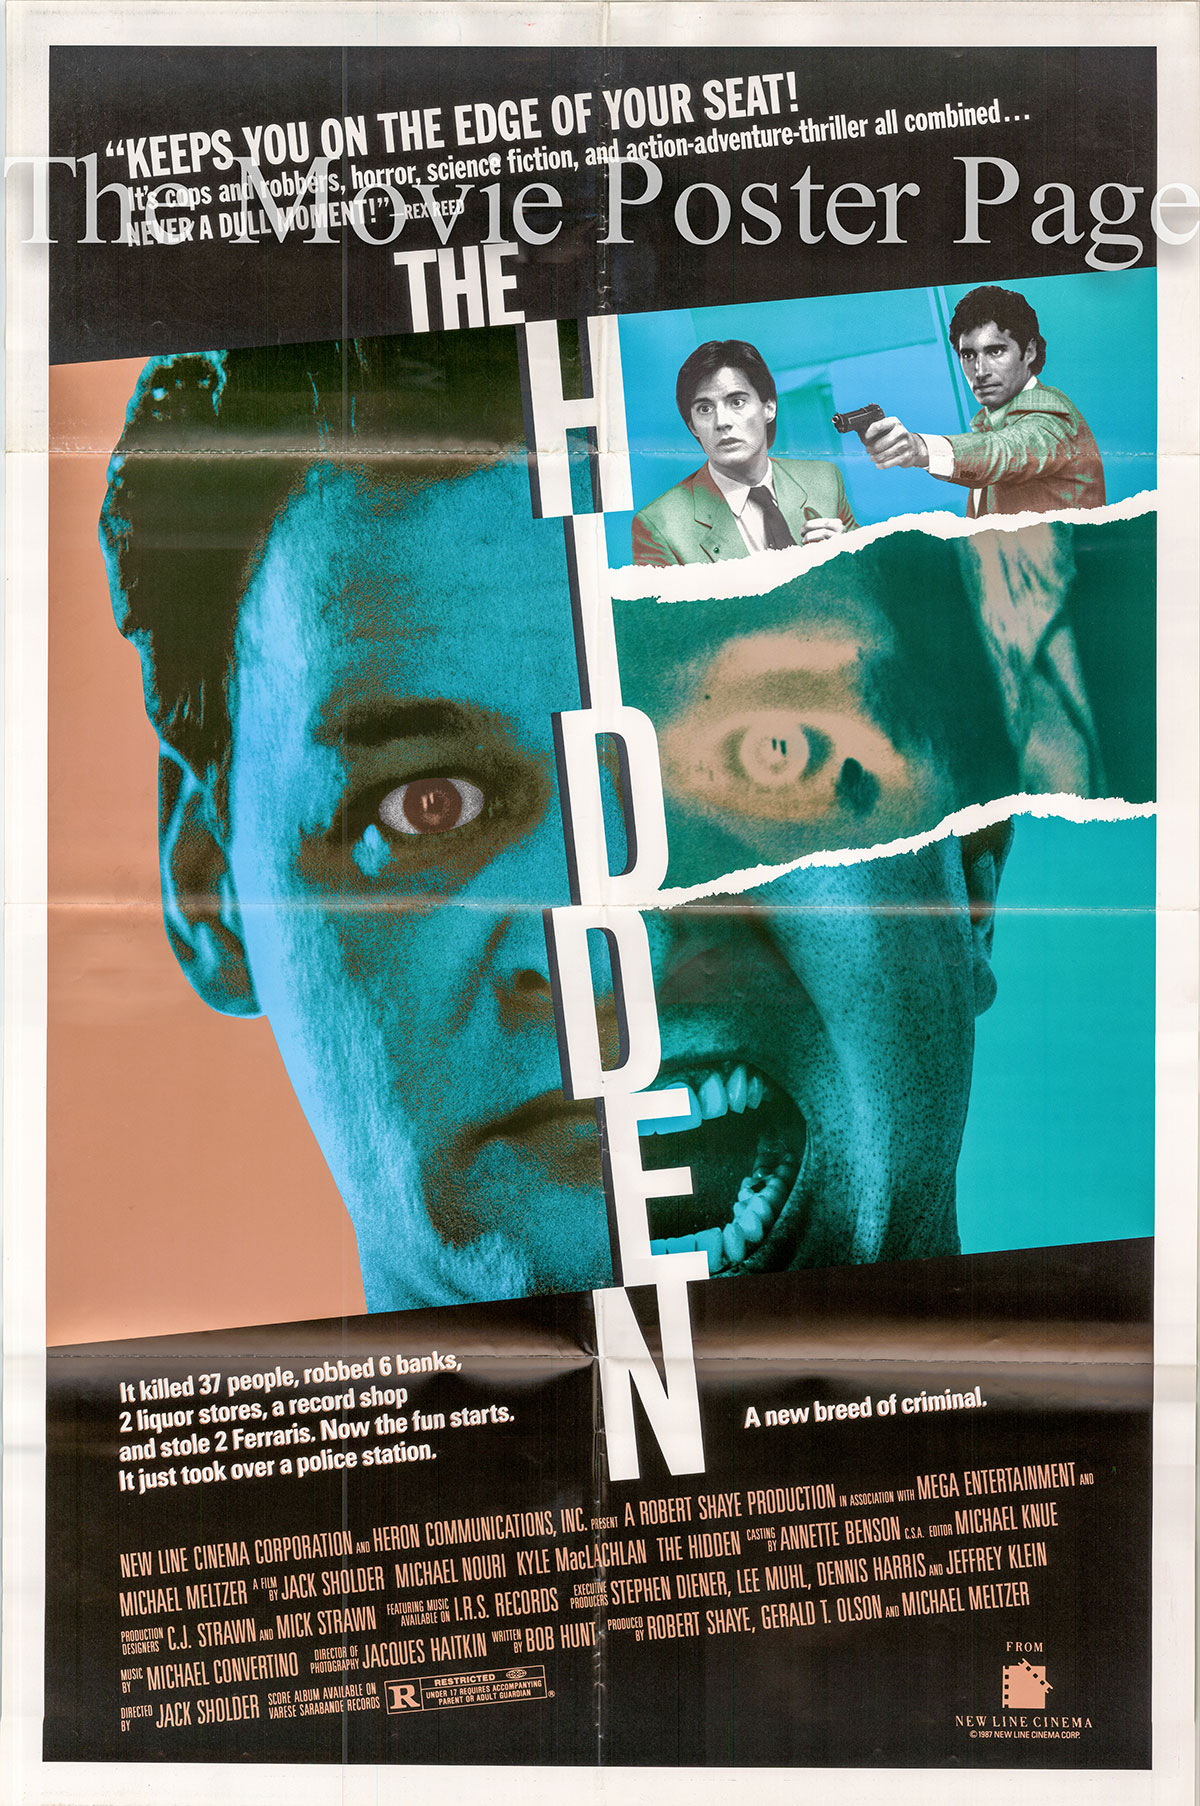 Pictured is a US one-sheet promotional poster for the 1987 Jack Sholder film The Hidden starring Kyle MacLachlan.